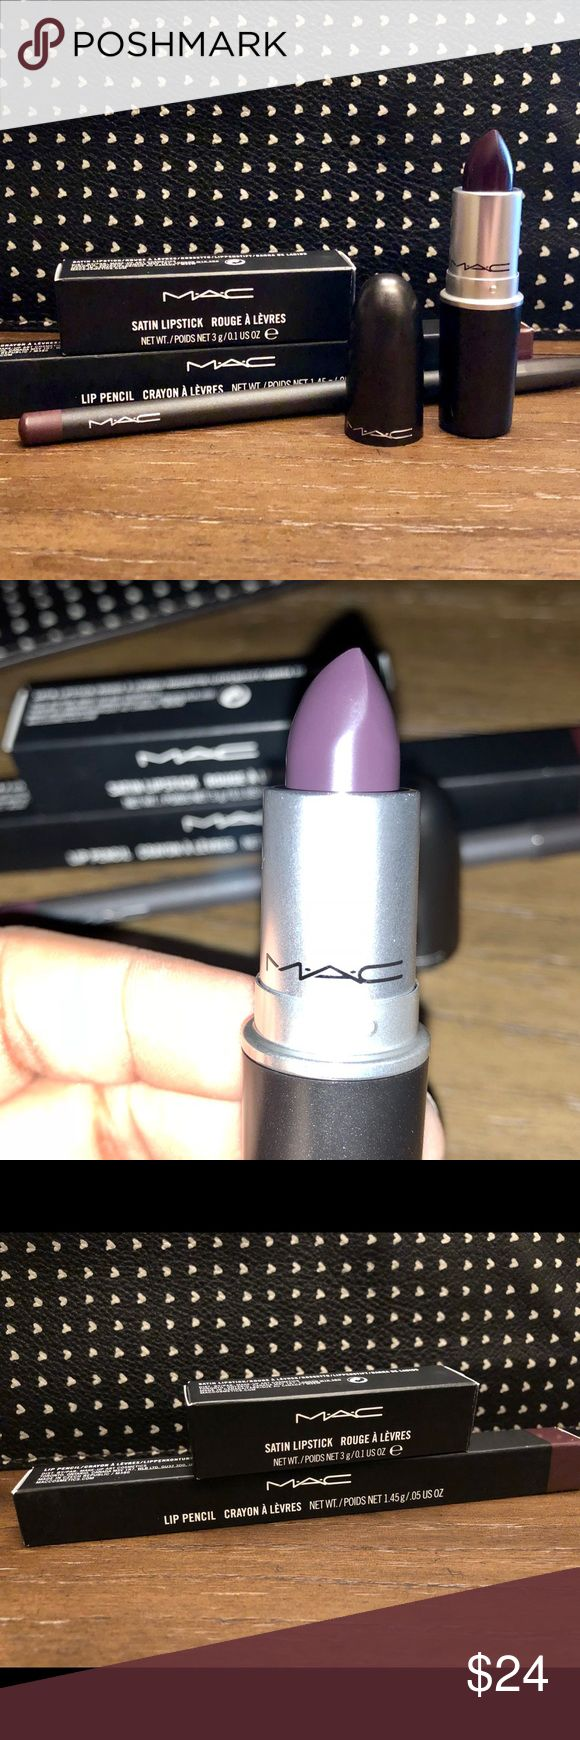 New Mac Lipstick Multiple Colors You Choose Brand No Box 10 50 13 95